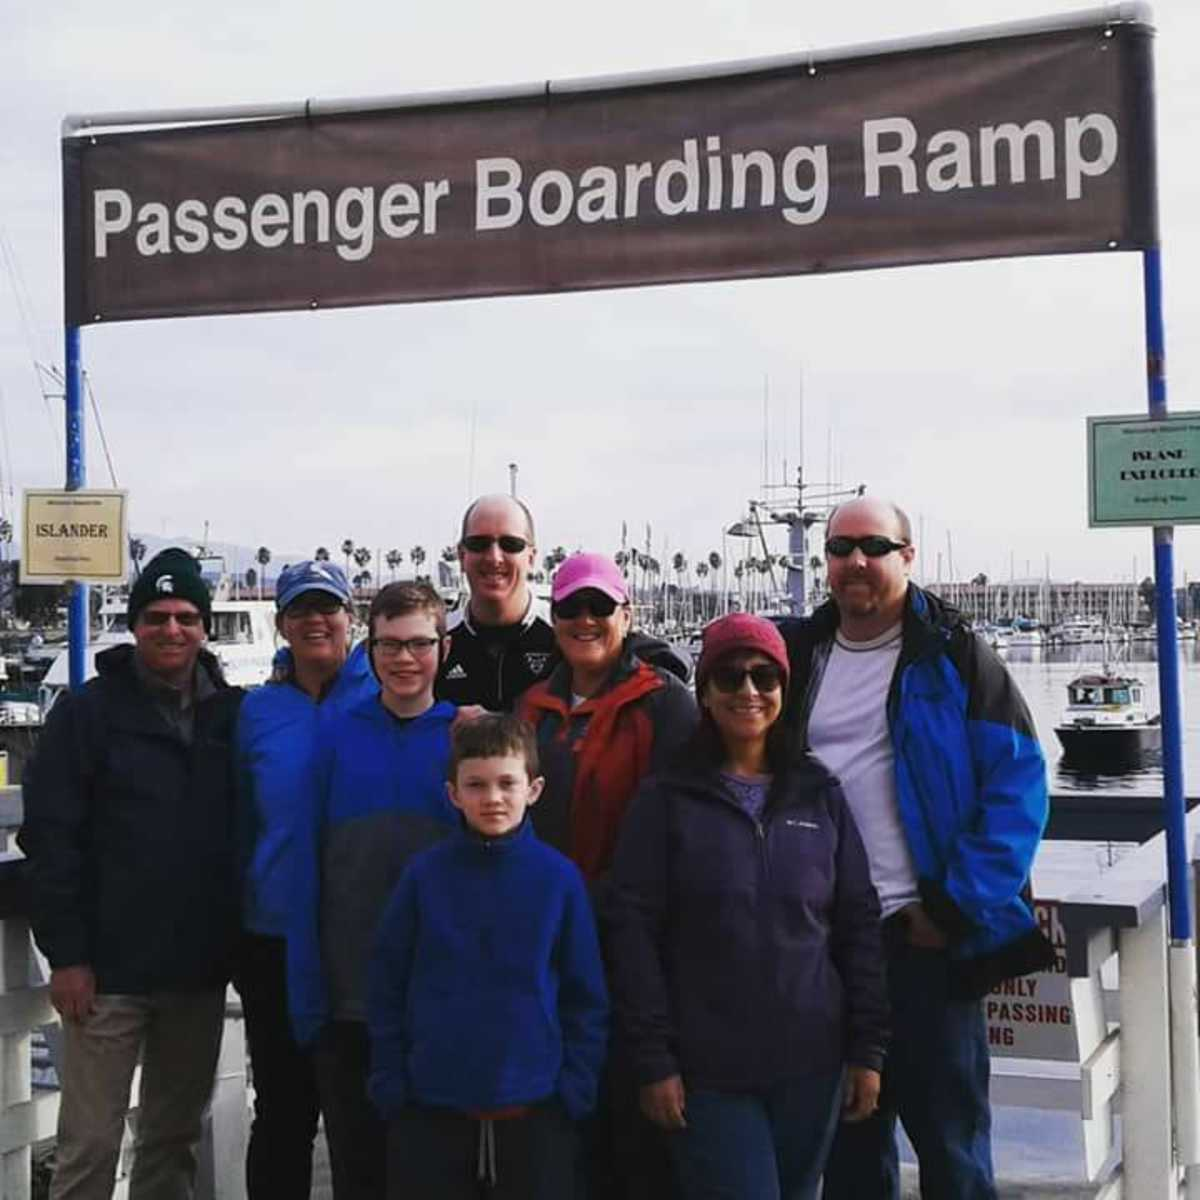 While private boat or airplane are options for transportation to the Channel Islands, the easiest method is via the Island Packers catamarans.